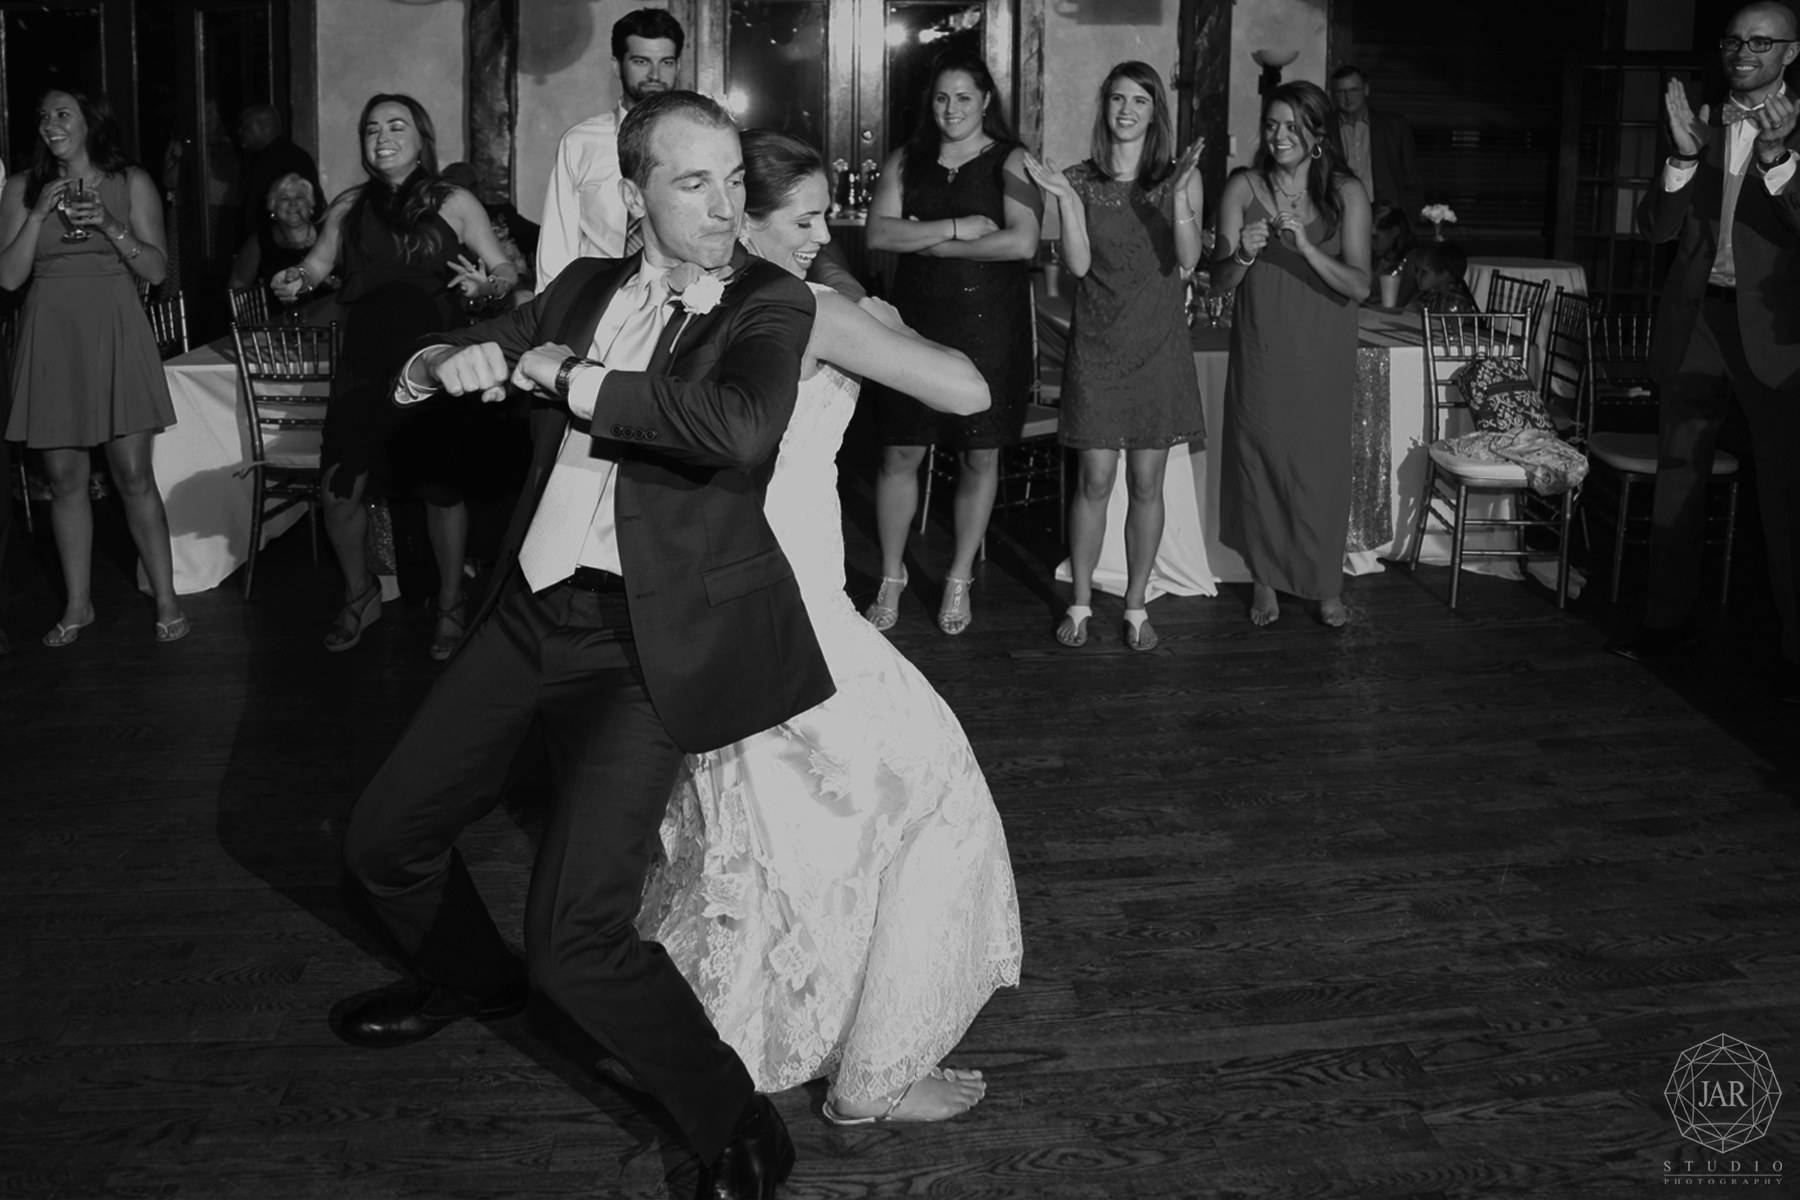 41-best-party-reception-fun-bride-groom-dancing-dubsdread-jarstudio-photography.JPG